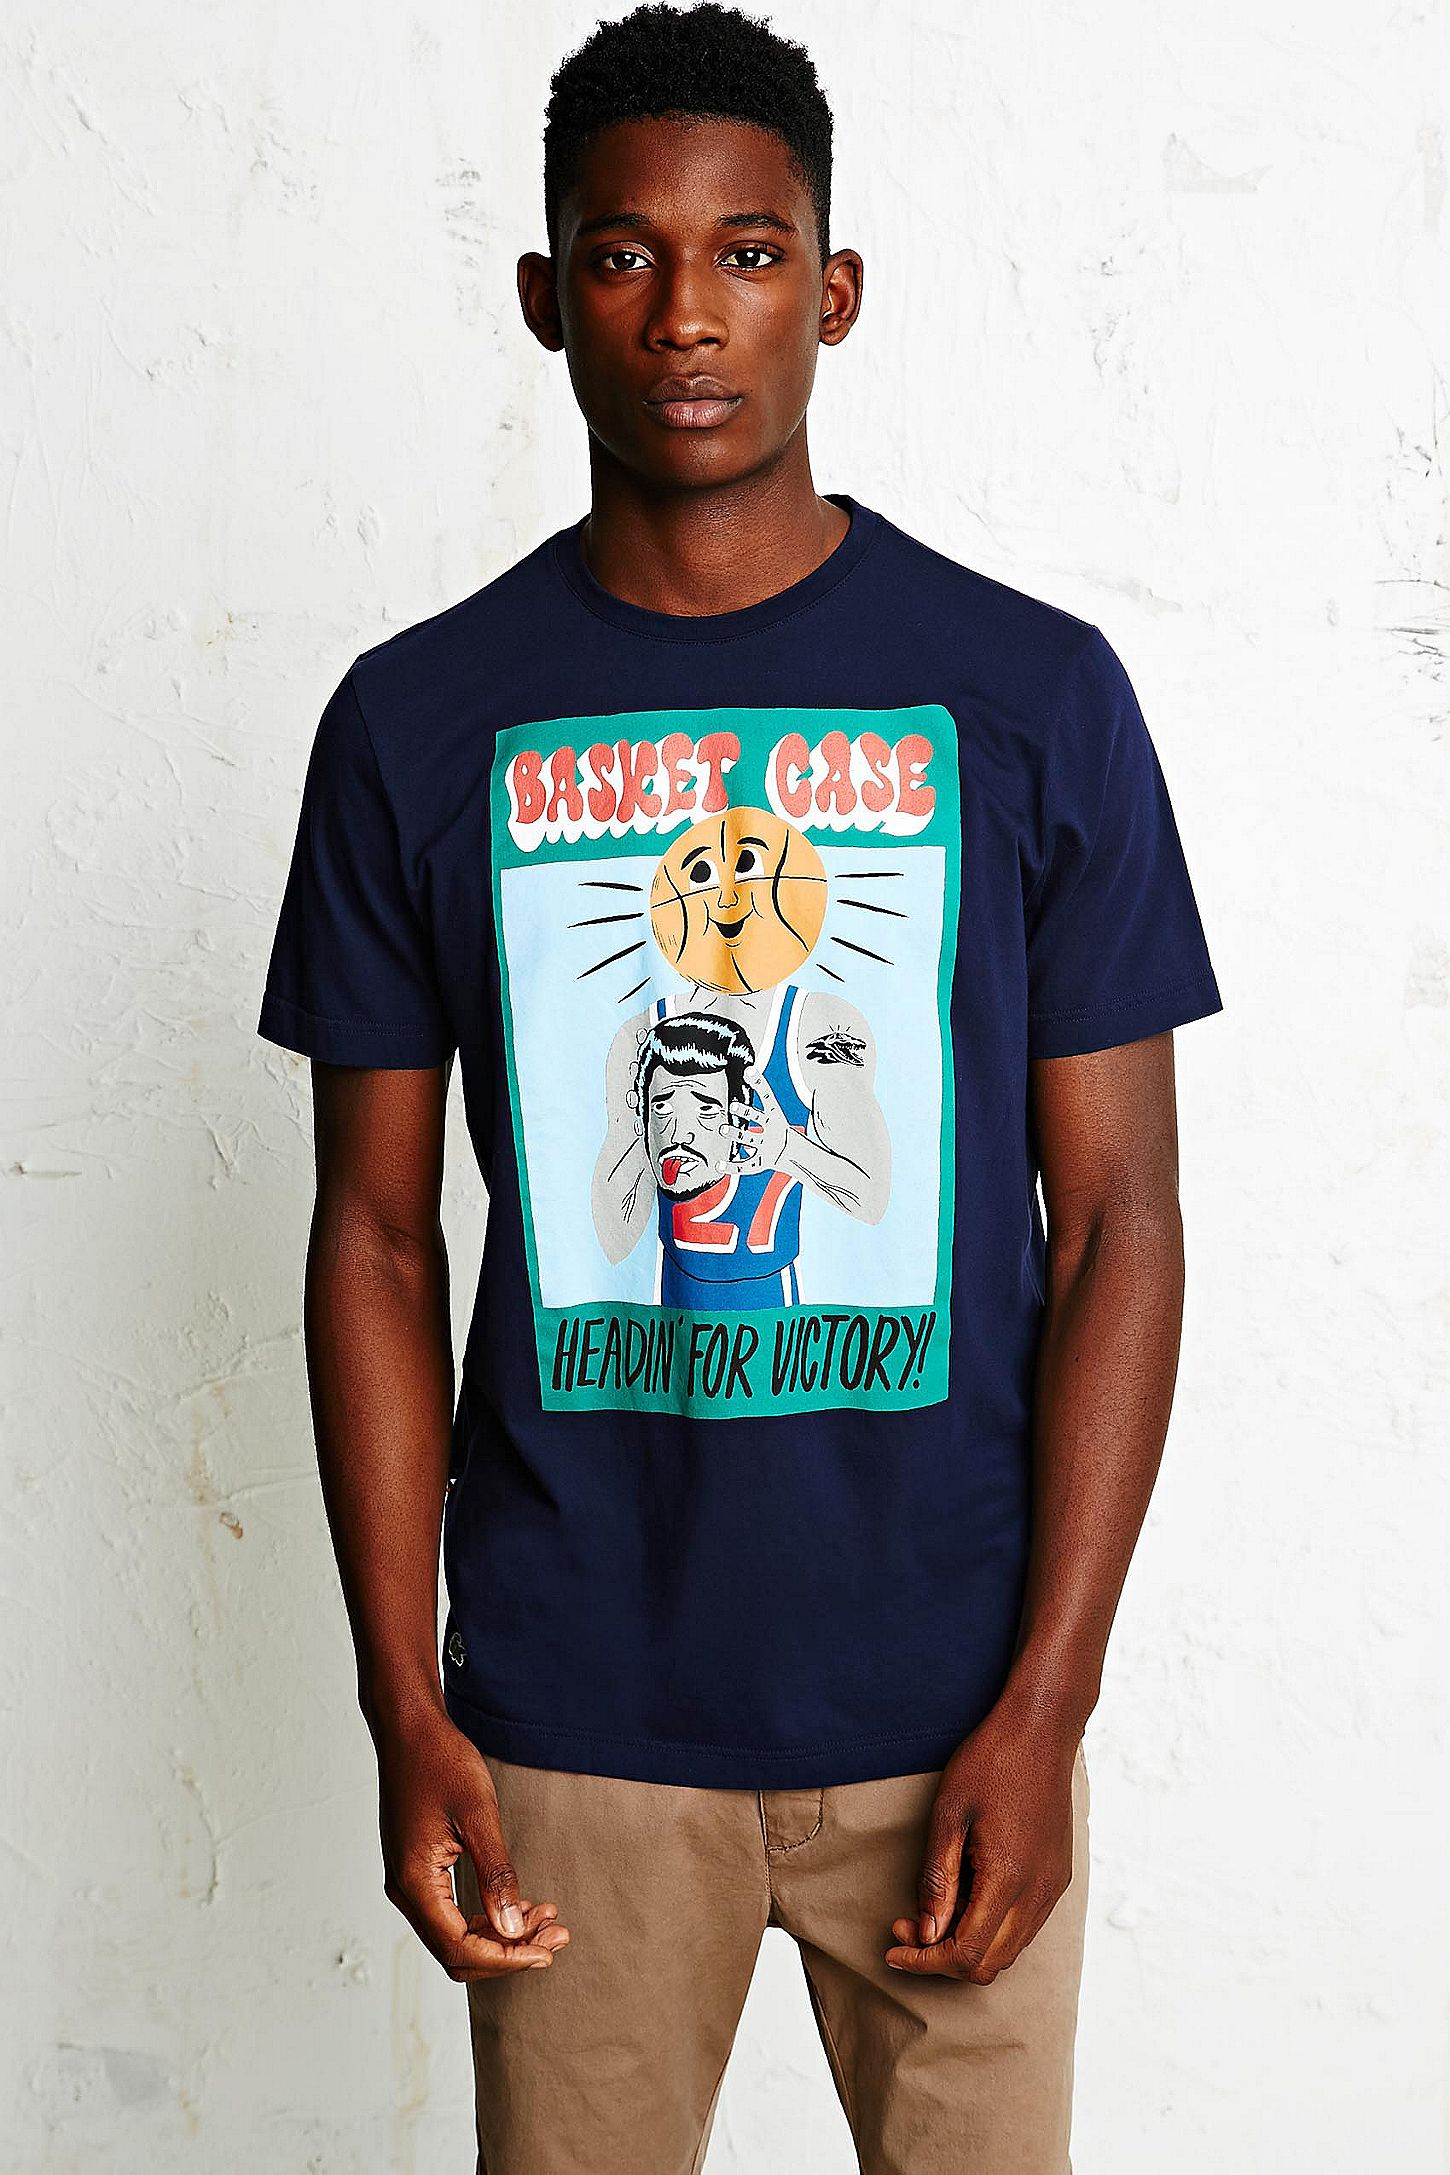 dbef5b3f11 Lacoste Live Basket Case Tee in Navy | Urban Outfitters UK